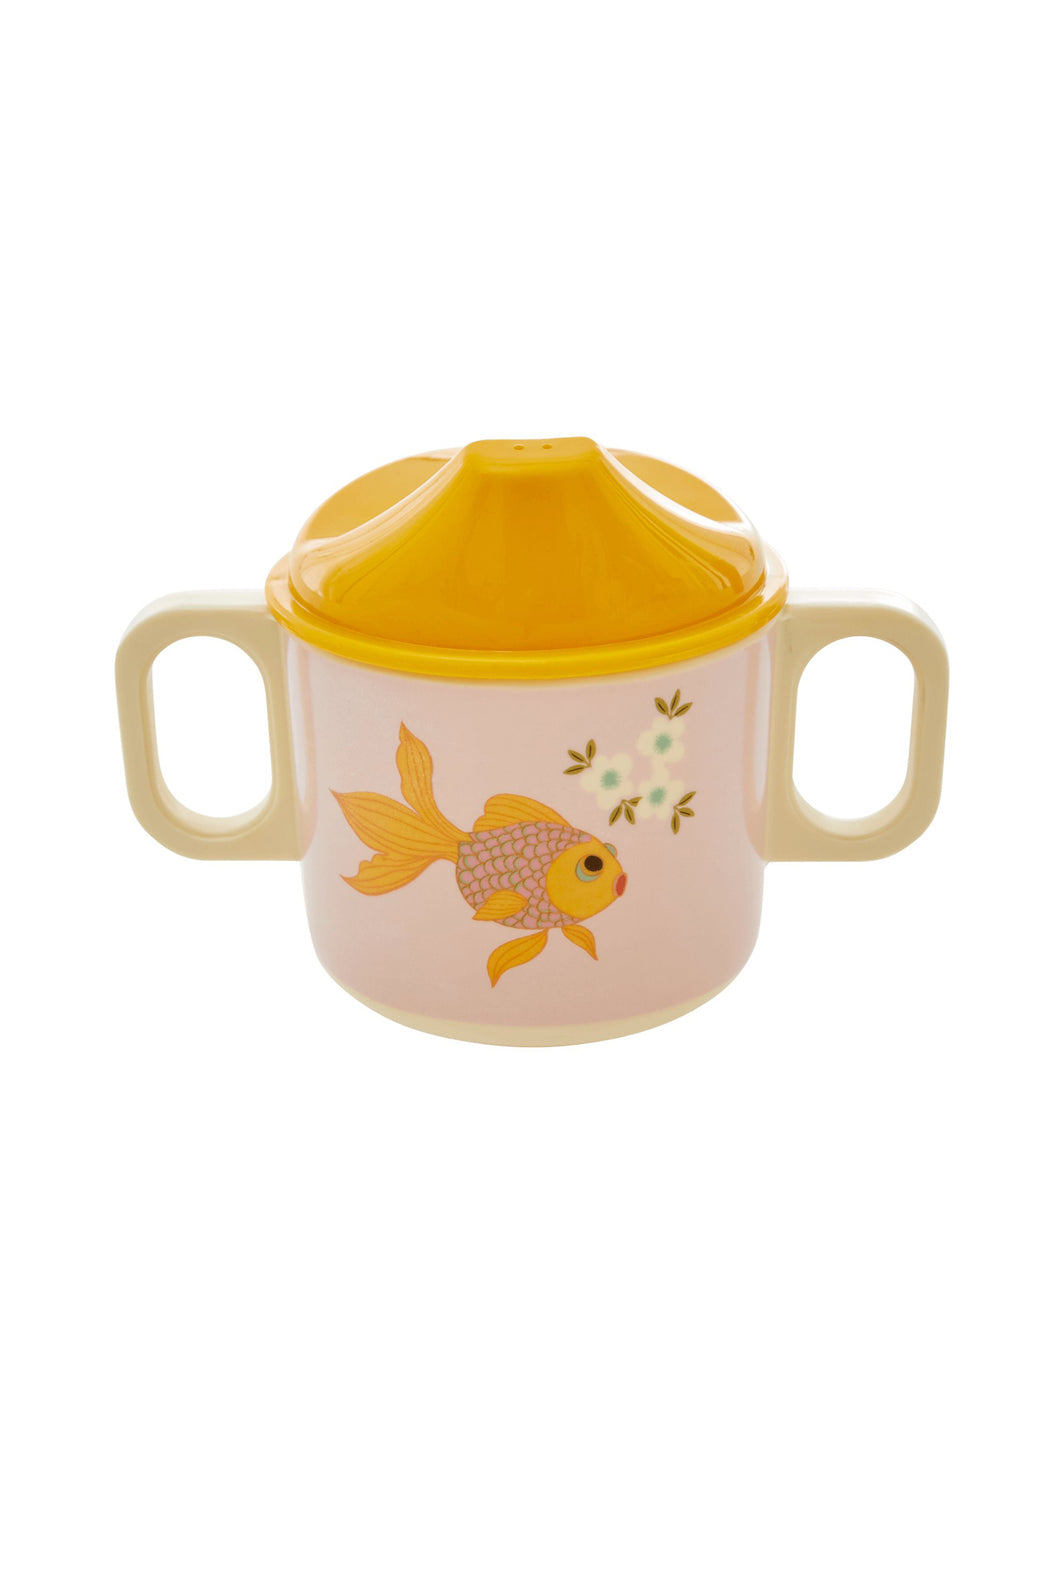 Gold Fish Print 2 Handle Melamine Baby Cup